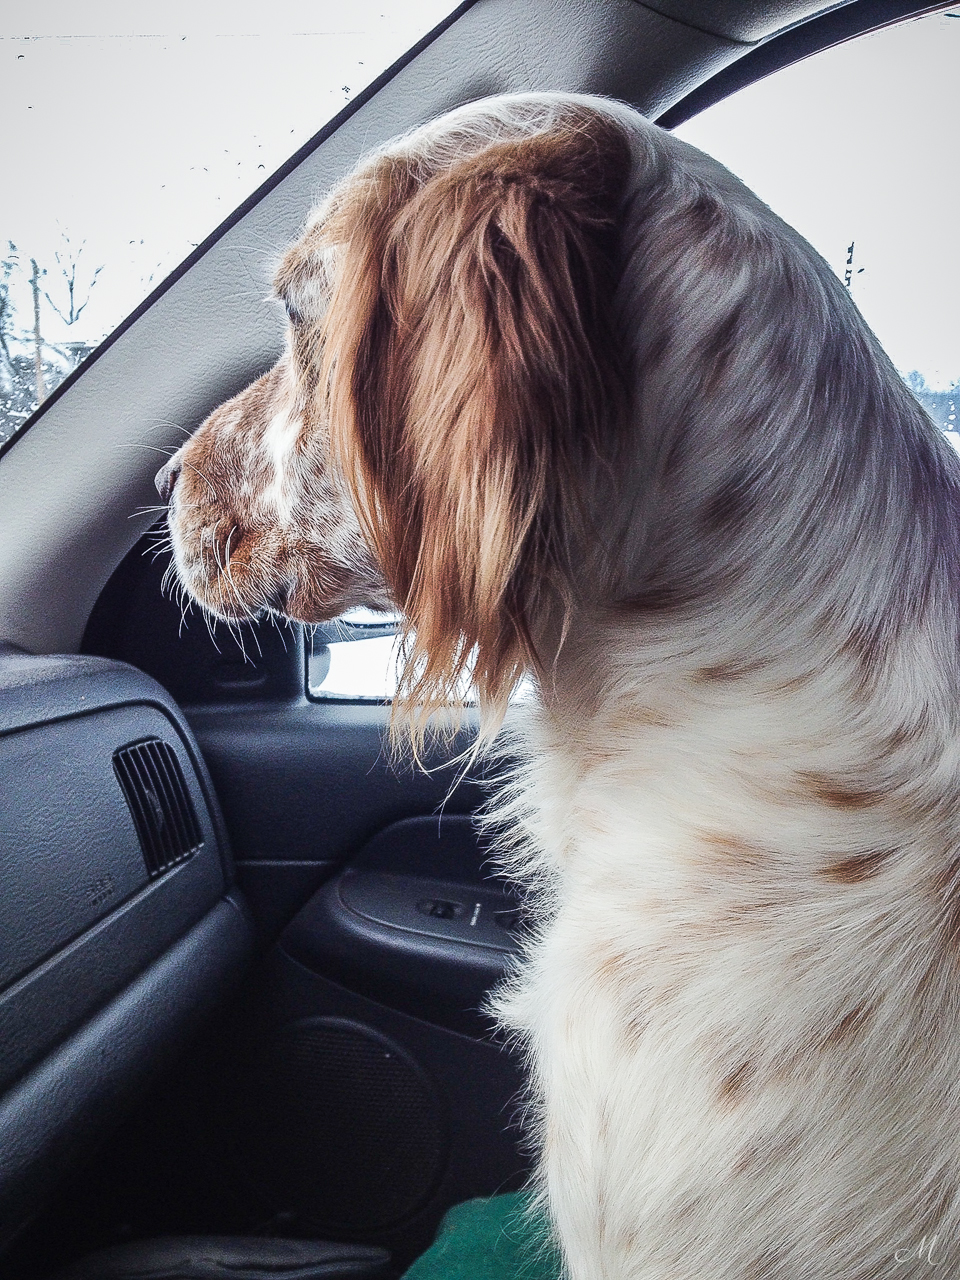 Nash was a great co-pilot